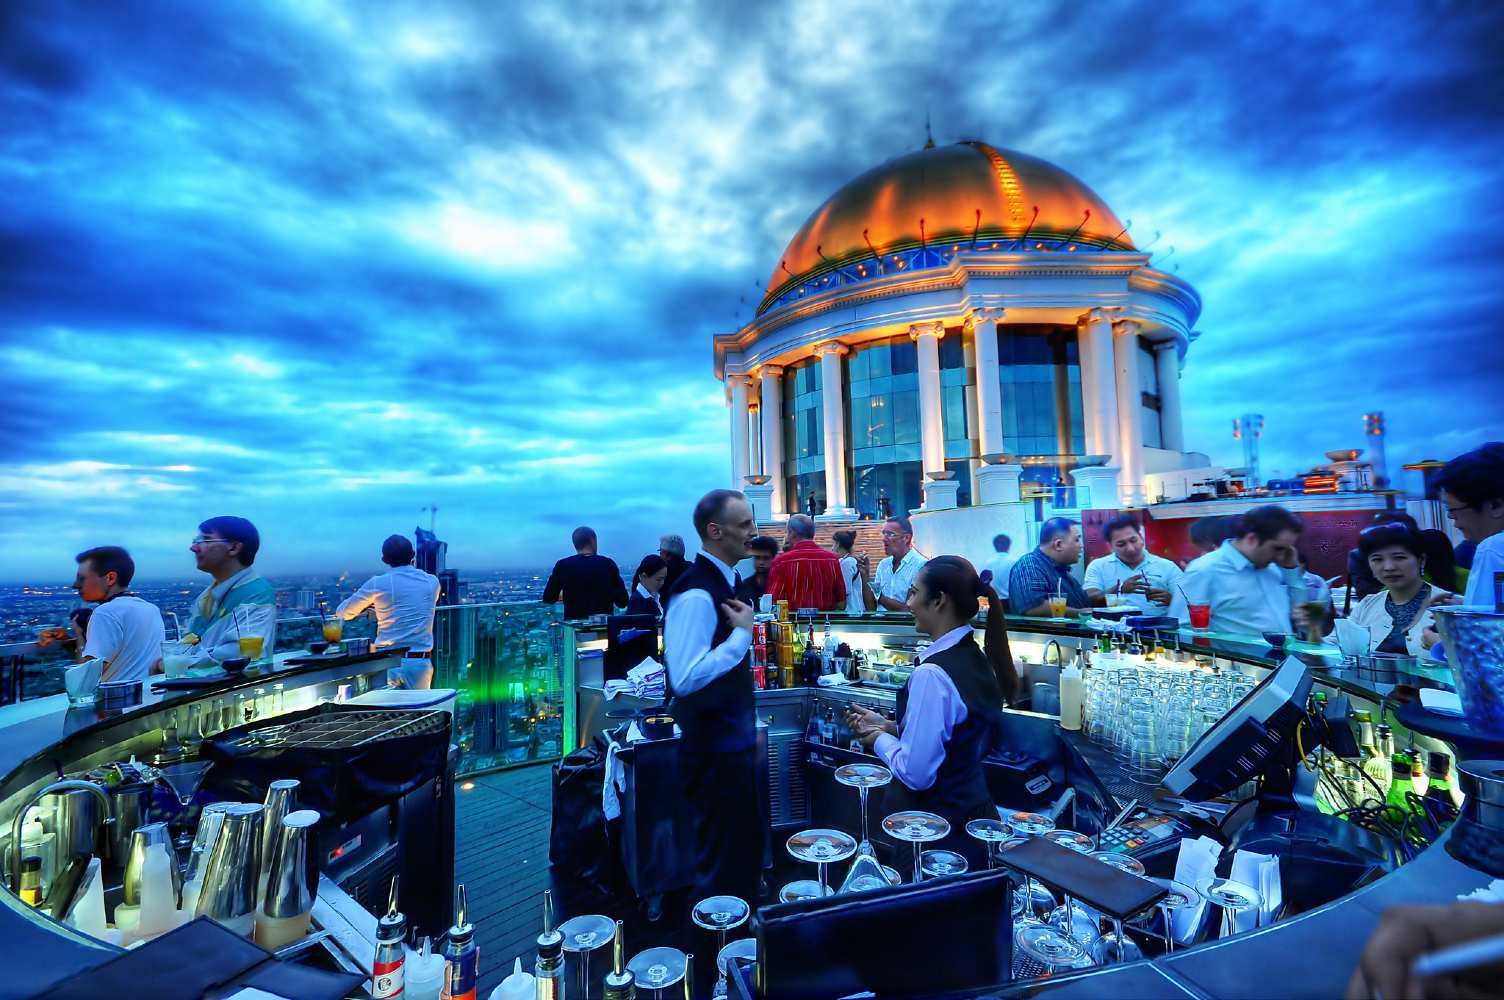 The famous dome at the Lebua State Tower in Bangkok